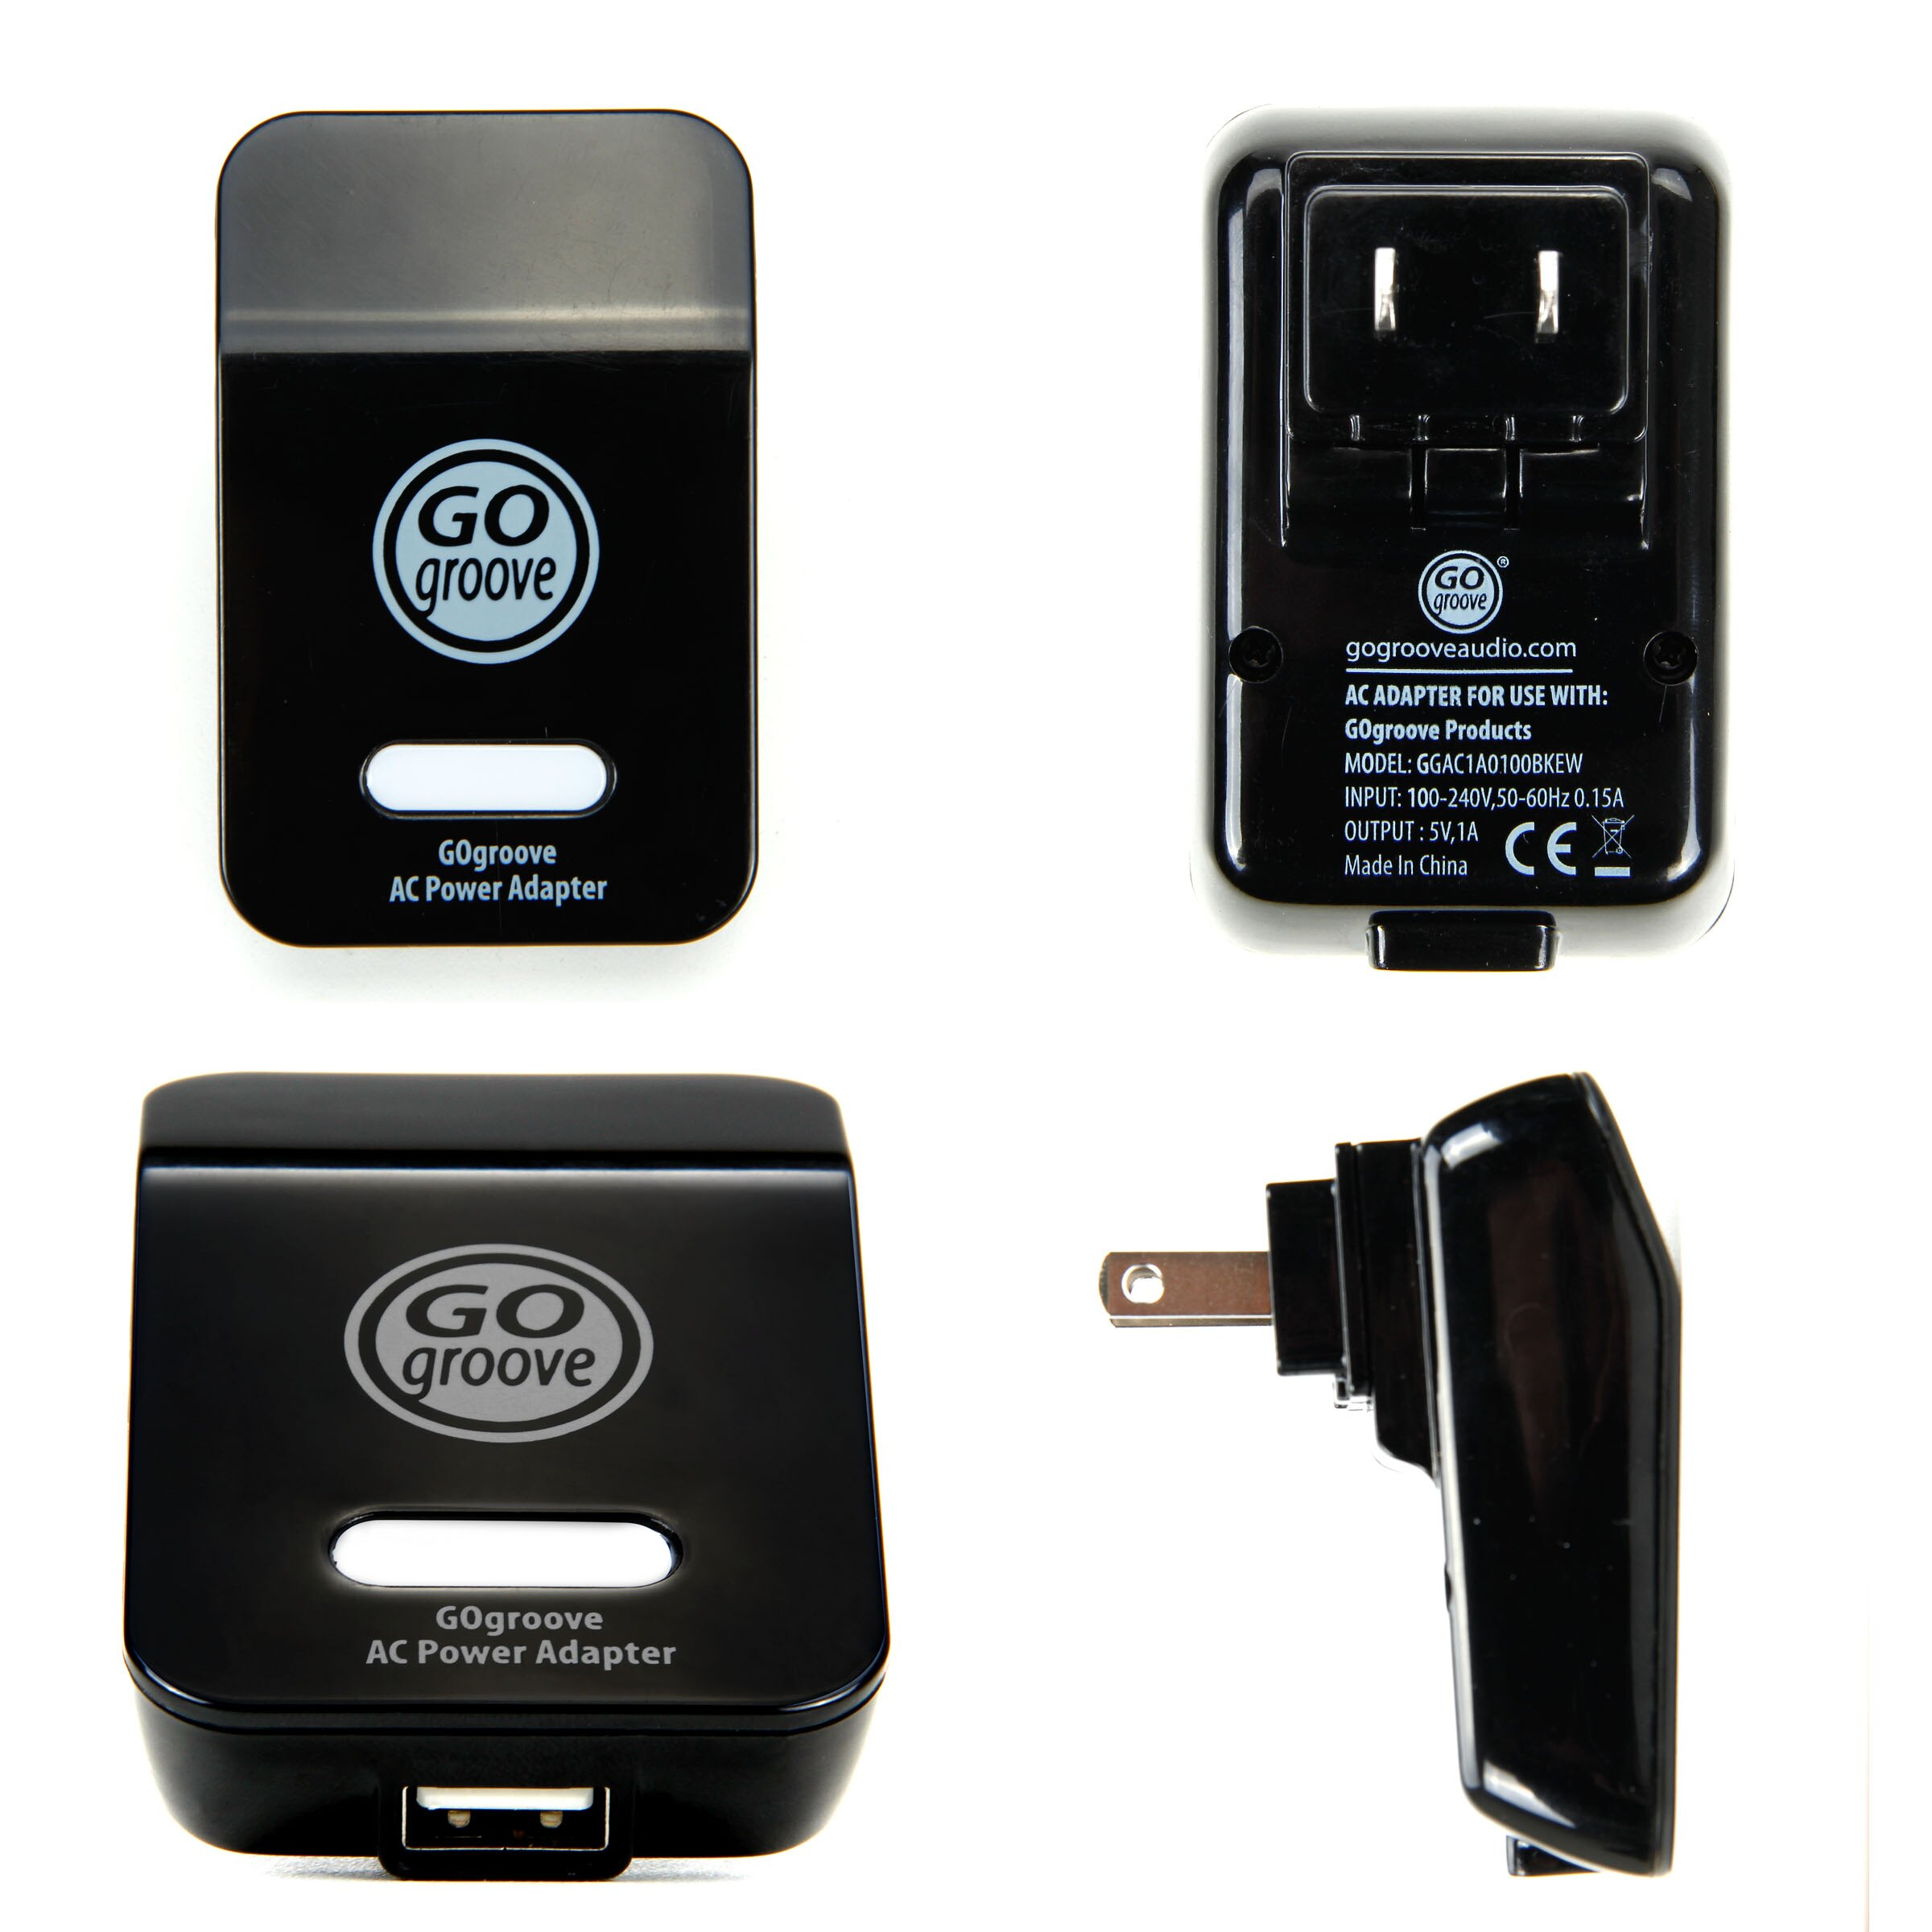 Universal USB Power Adapter Plug by GOgroove for many USB powered Portable Bluetooth Speakers 3